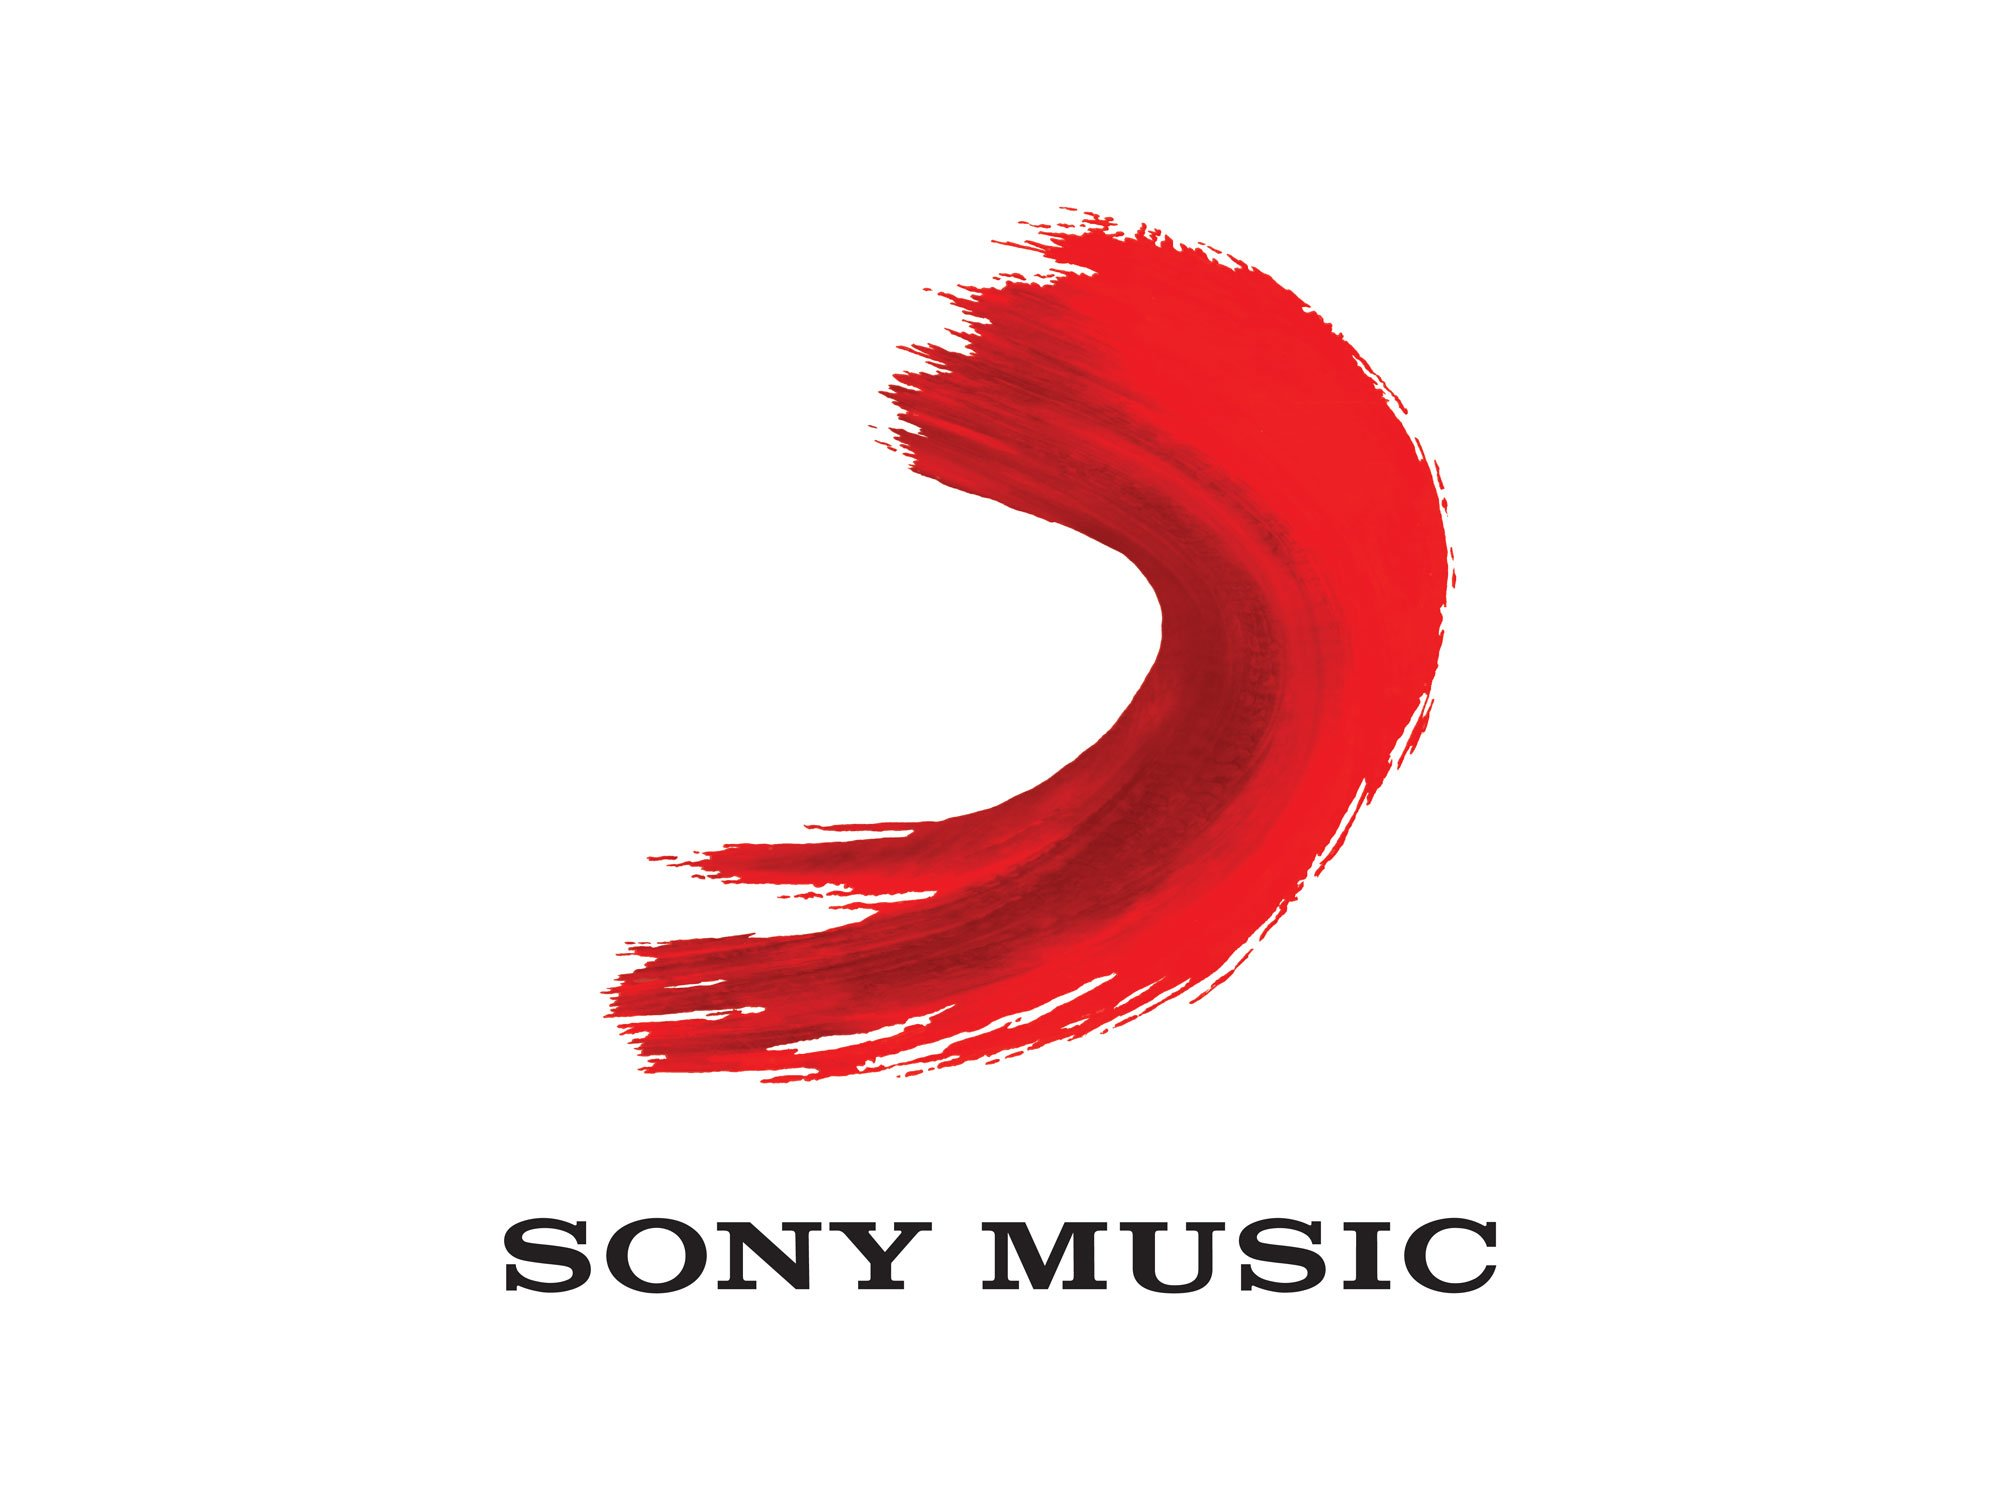 This Week In Music: Sony Music Steps Up For Its Older Artists, Cancels Unrecouped Debts